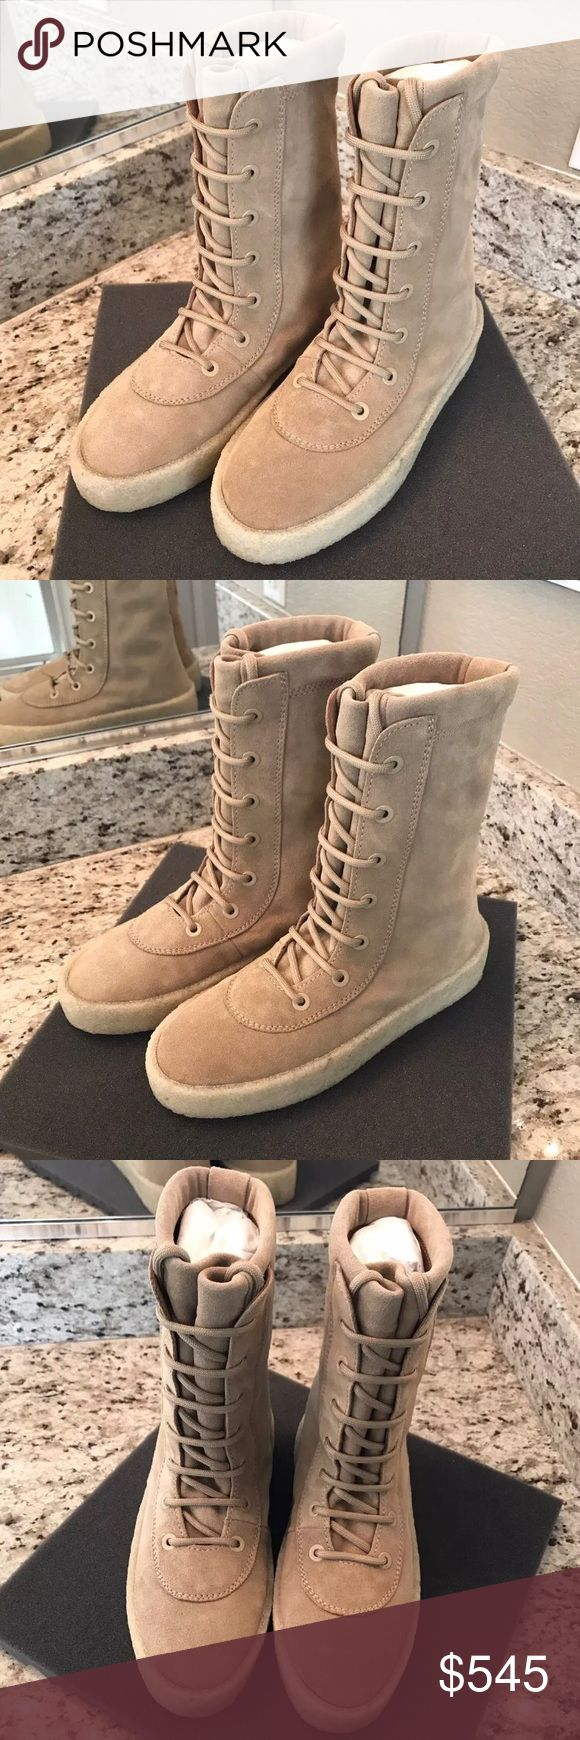 Yeezy season 2 crepe boots Brand new yeezy season 2 crepe taupe boots. They are 100% authentic. This size is a 41, size 8 US in men. yeezy season  Shoes Boots